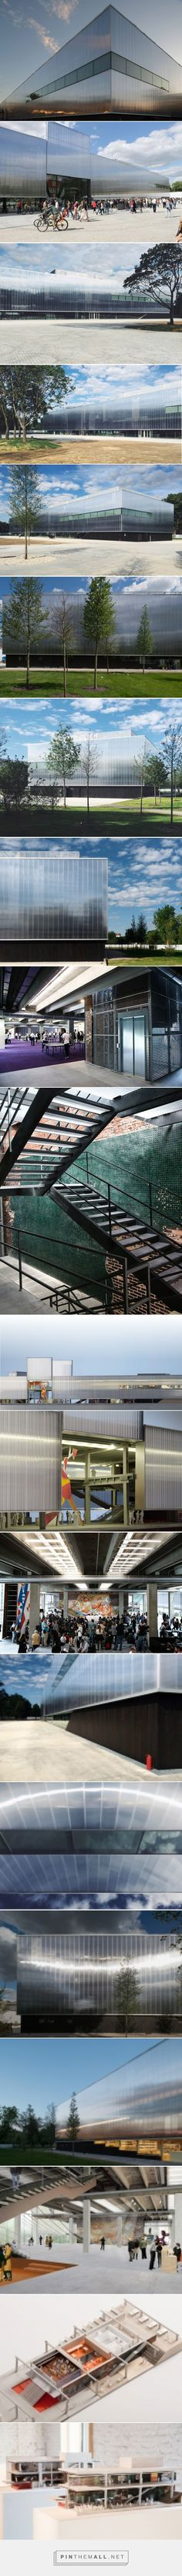 OMA's garage museum of contemporary art opens - created via http://pinthemall.net